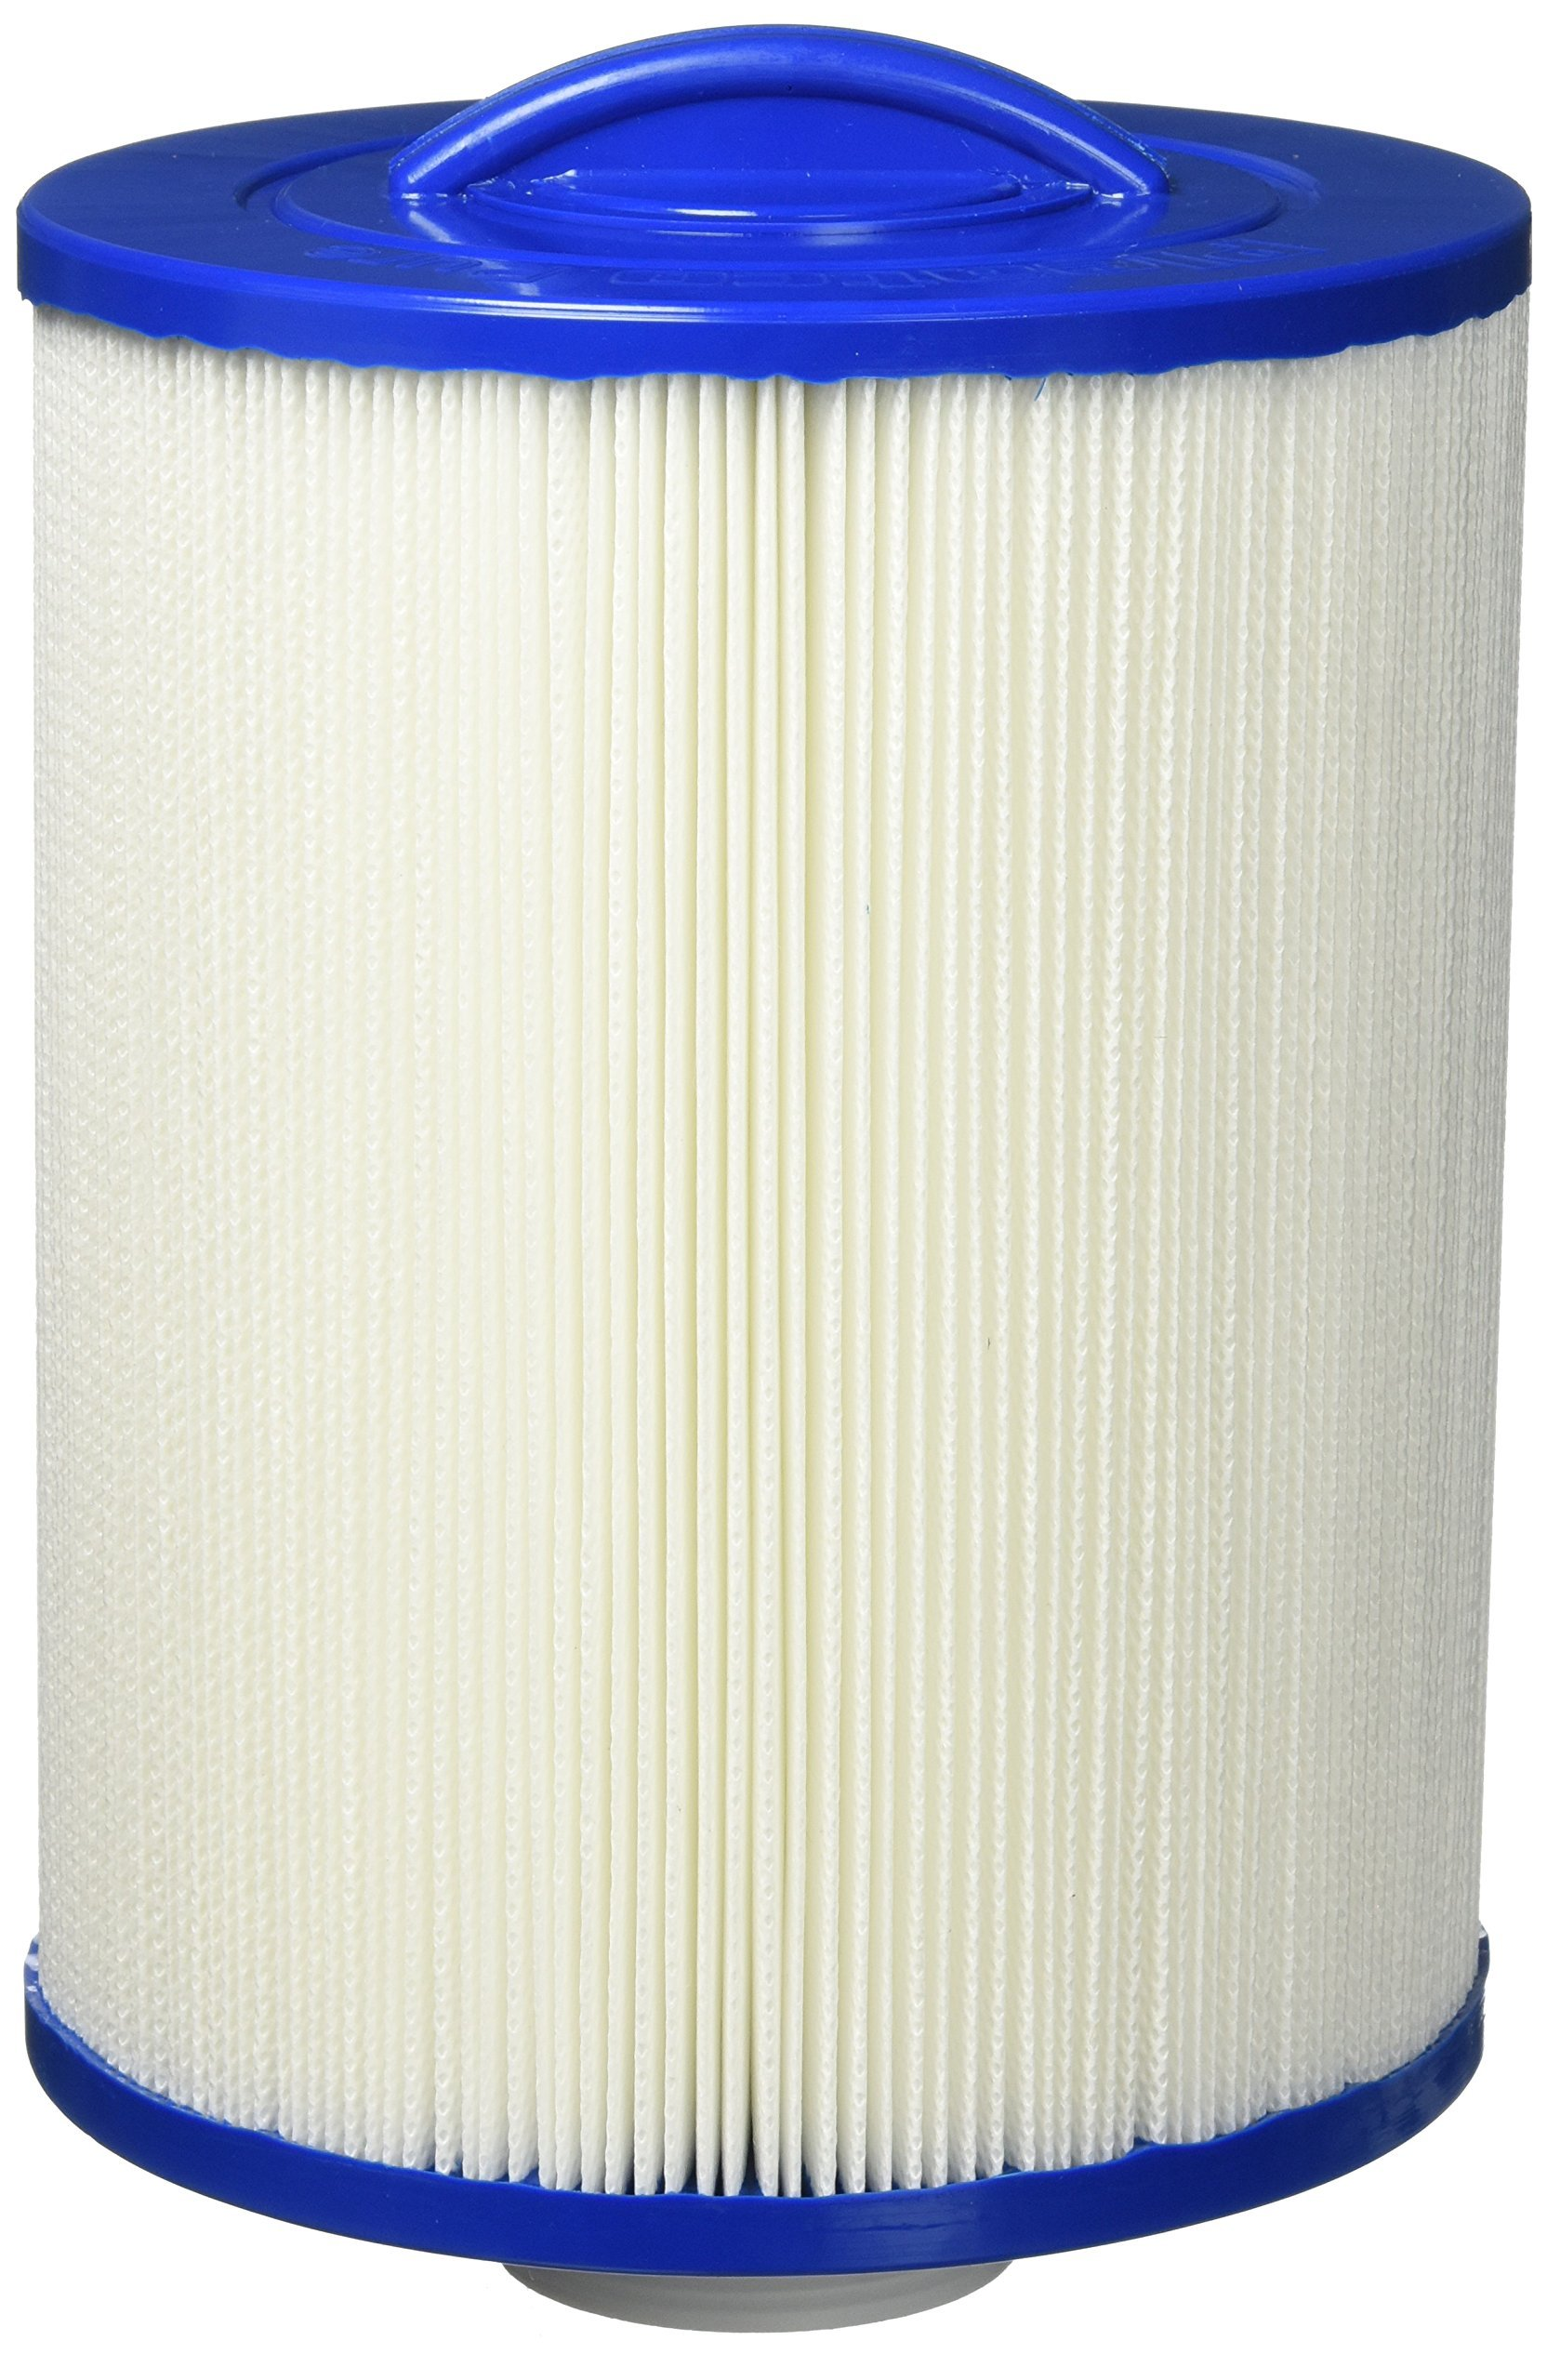 Pleatco PAS40-F2M Replacement Cartridge for New Artesian 6-Inch D Spa Cartridge, 1 Cartridge